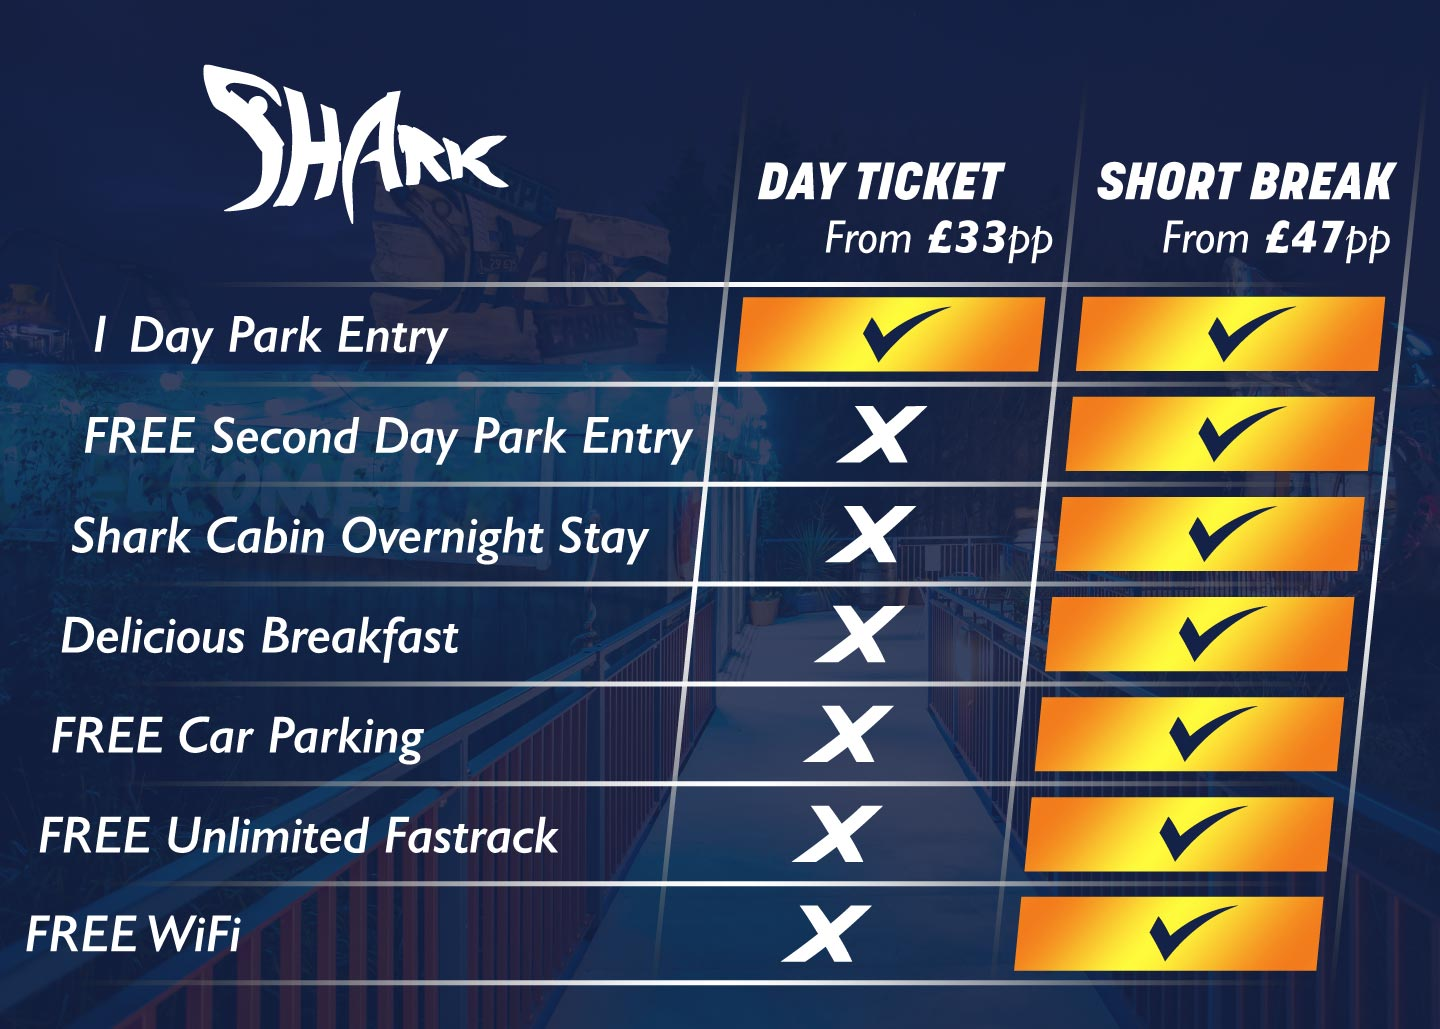 Thorpe Shark Cabins perks at Thorpe Park